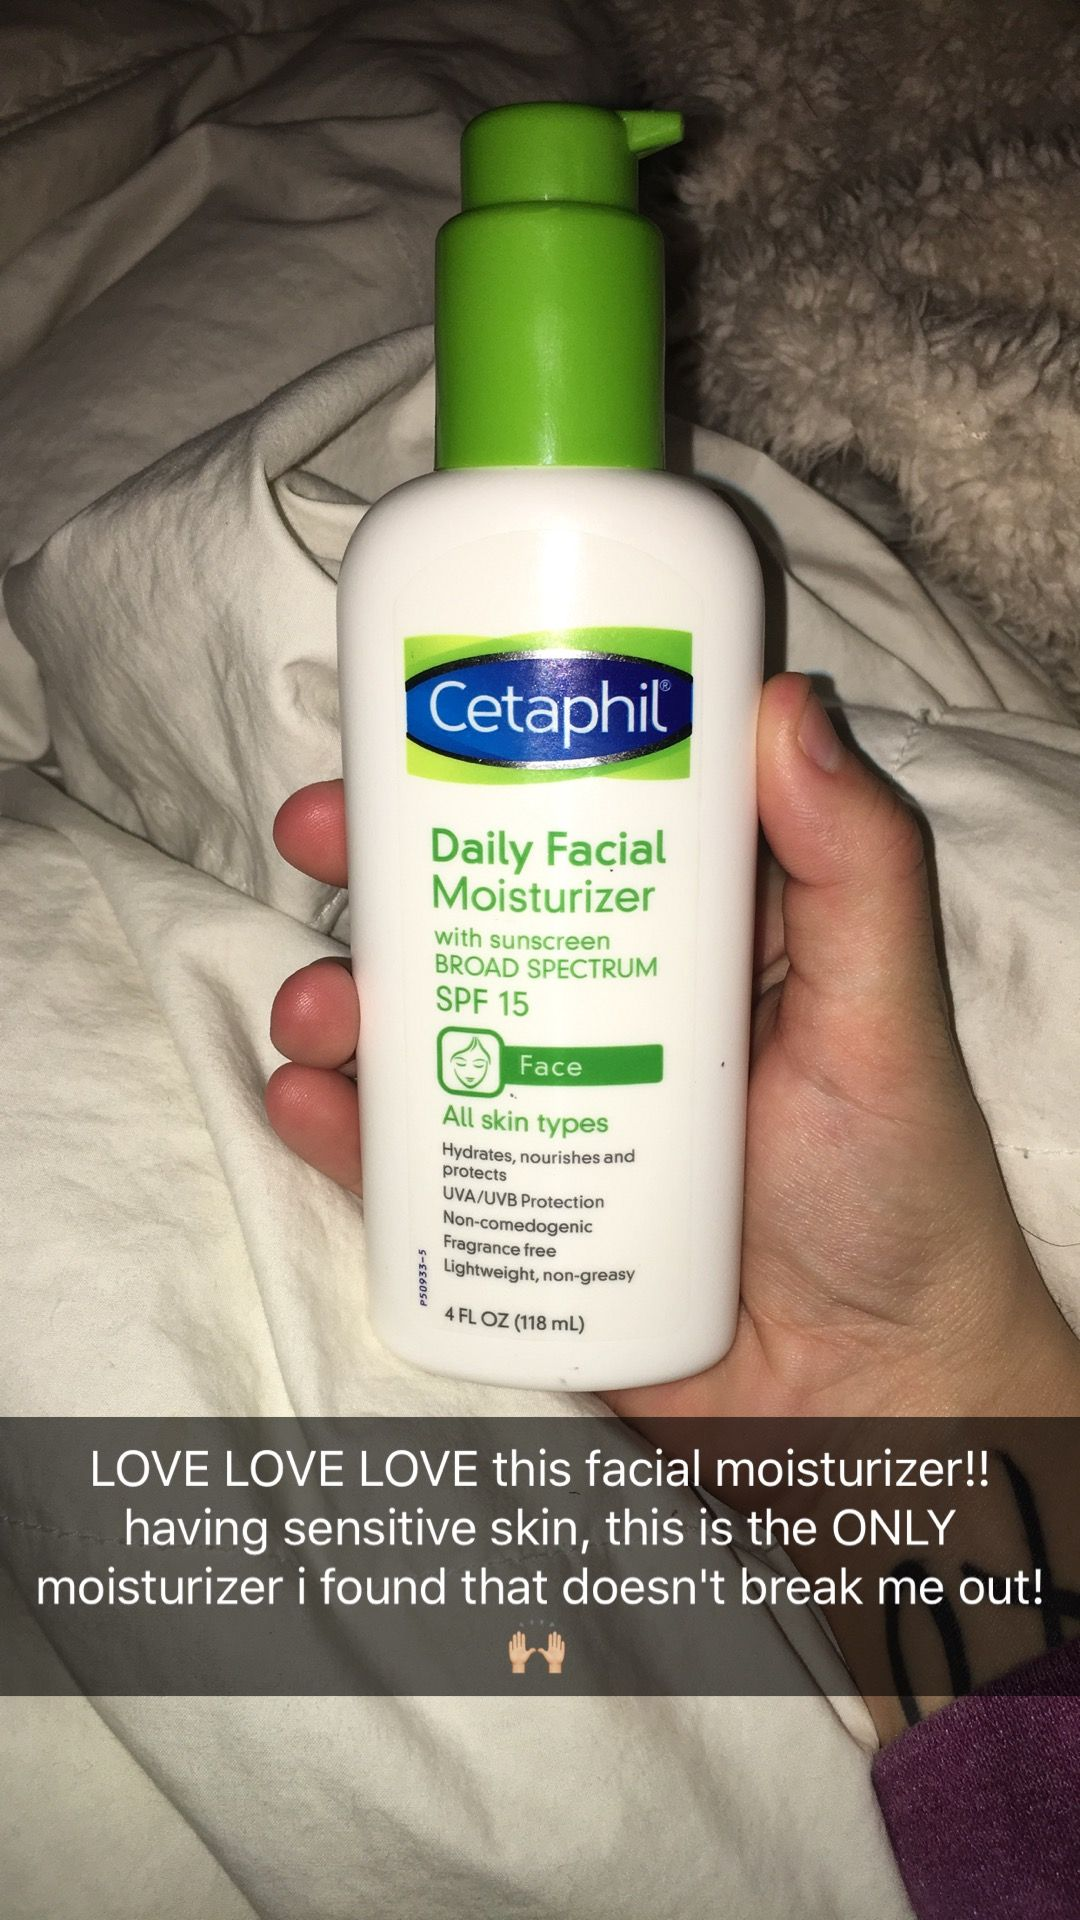 Cetaphil Daily Facial Moisturizer From Walmart Beauty Skin Care Facial Moisturizers Body Skin Care